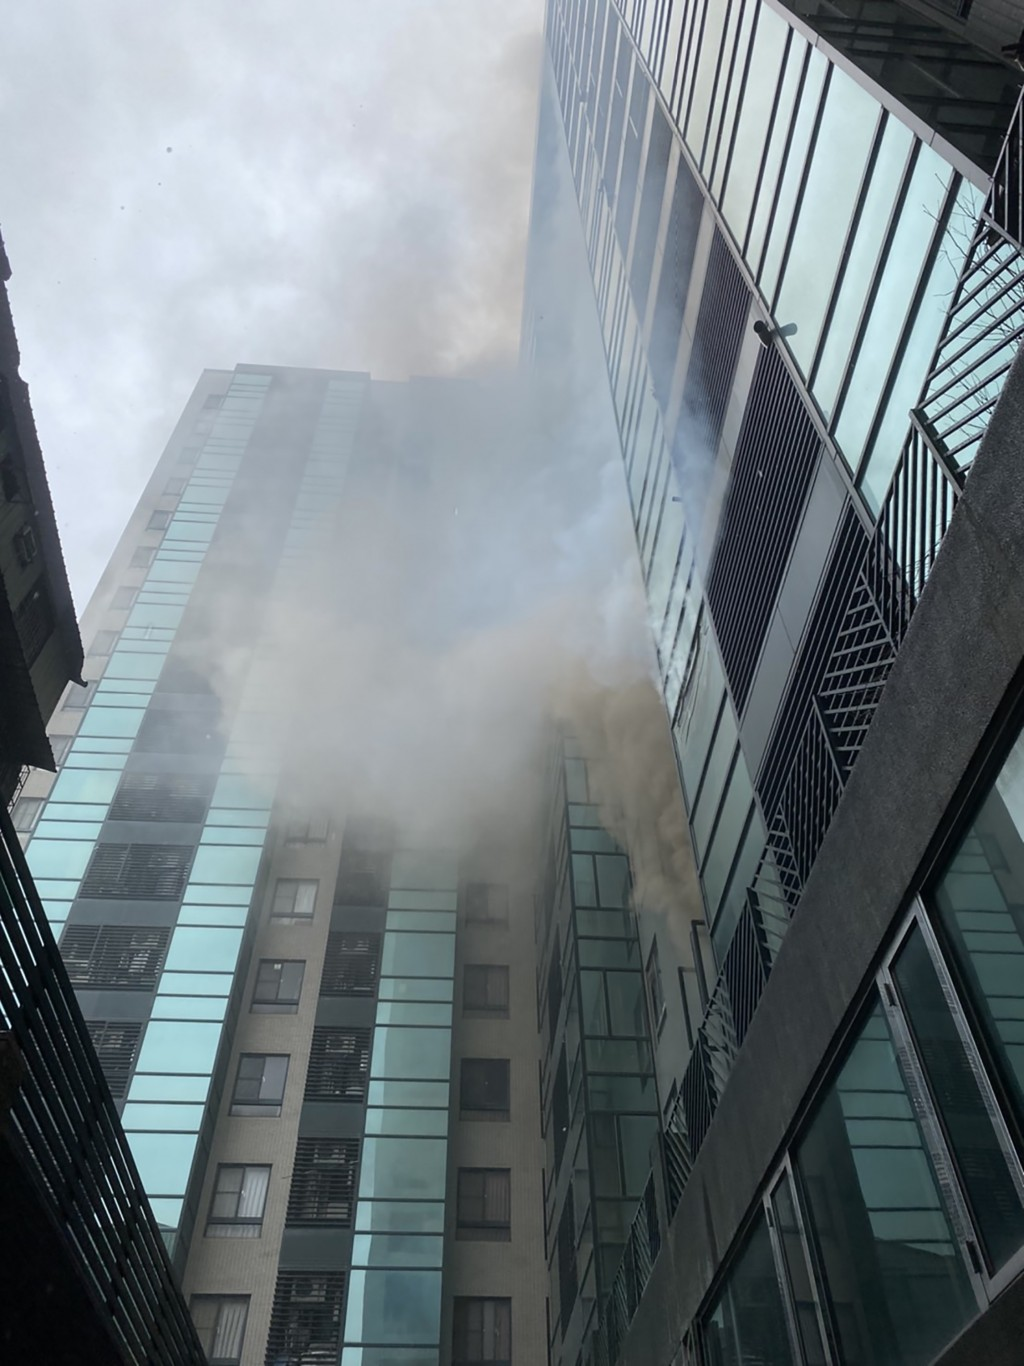 Smoke starts to billowfrom the third floor of the residential building. (CNA photo)